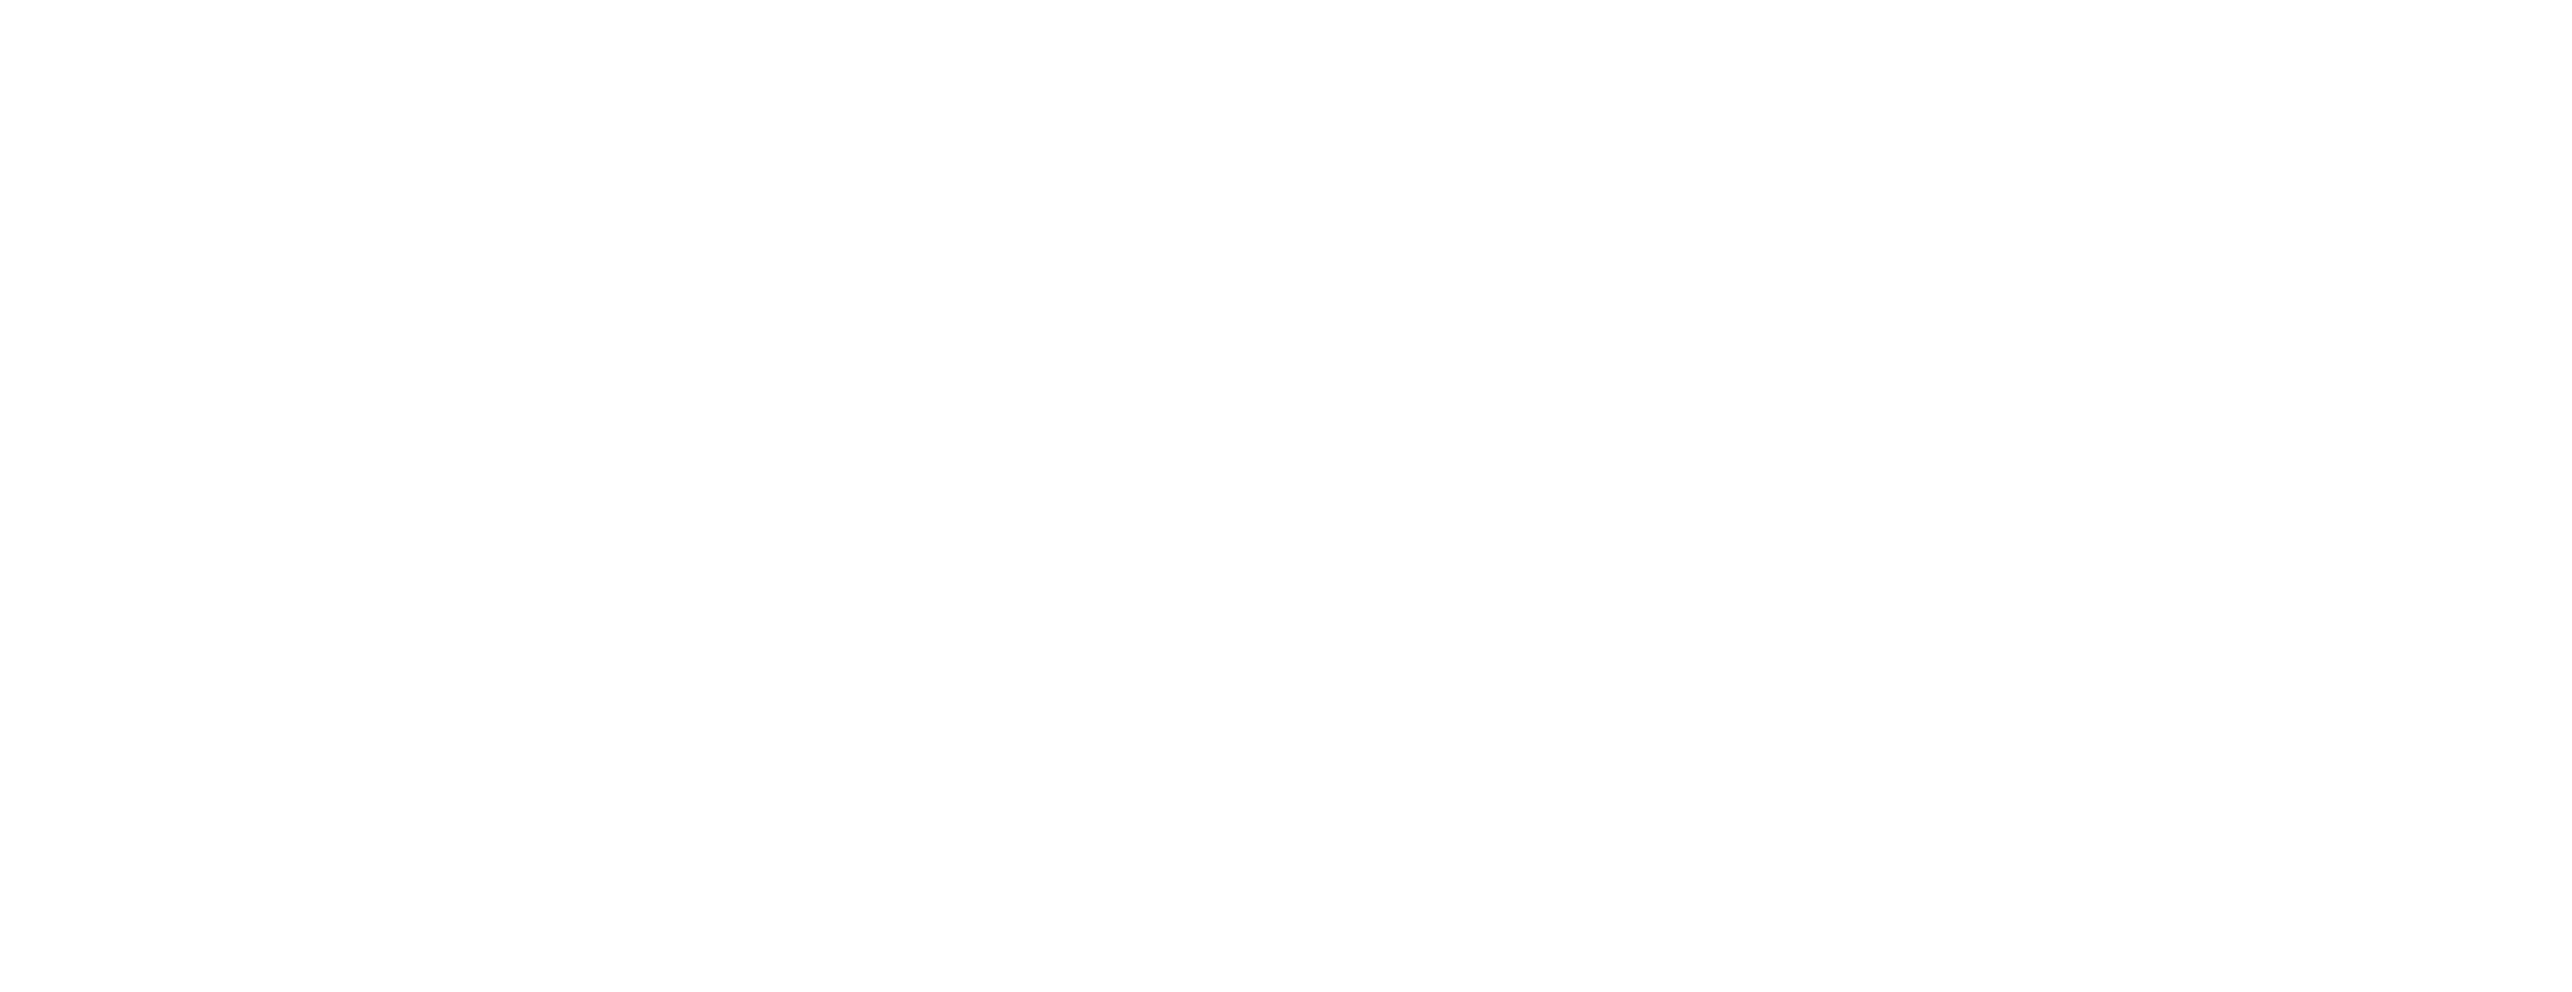 Ranelagh Adventist Church